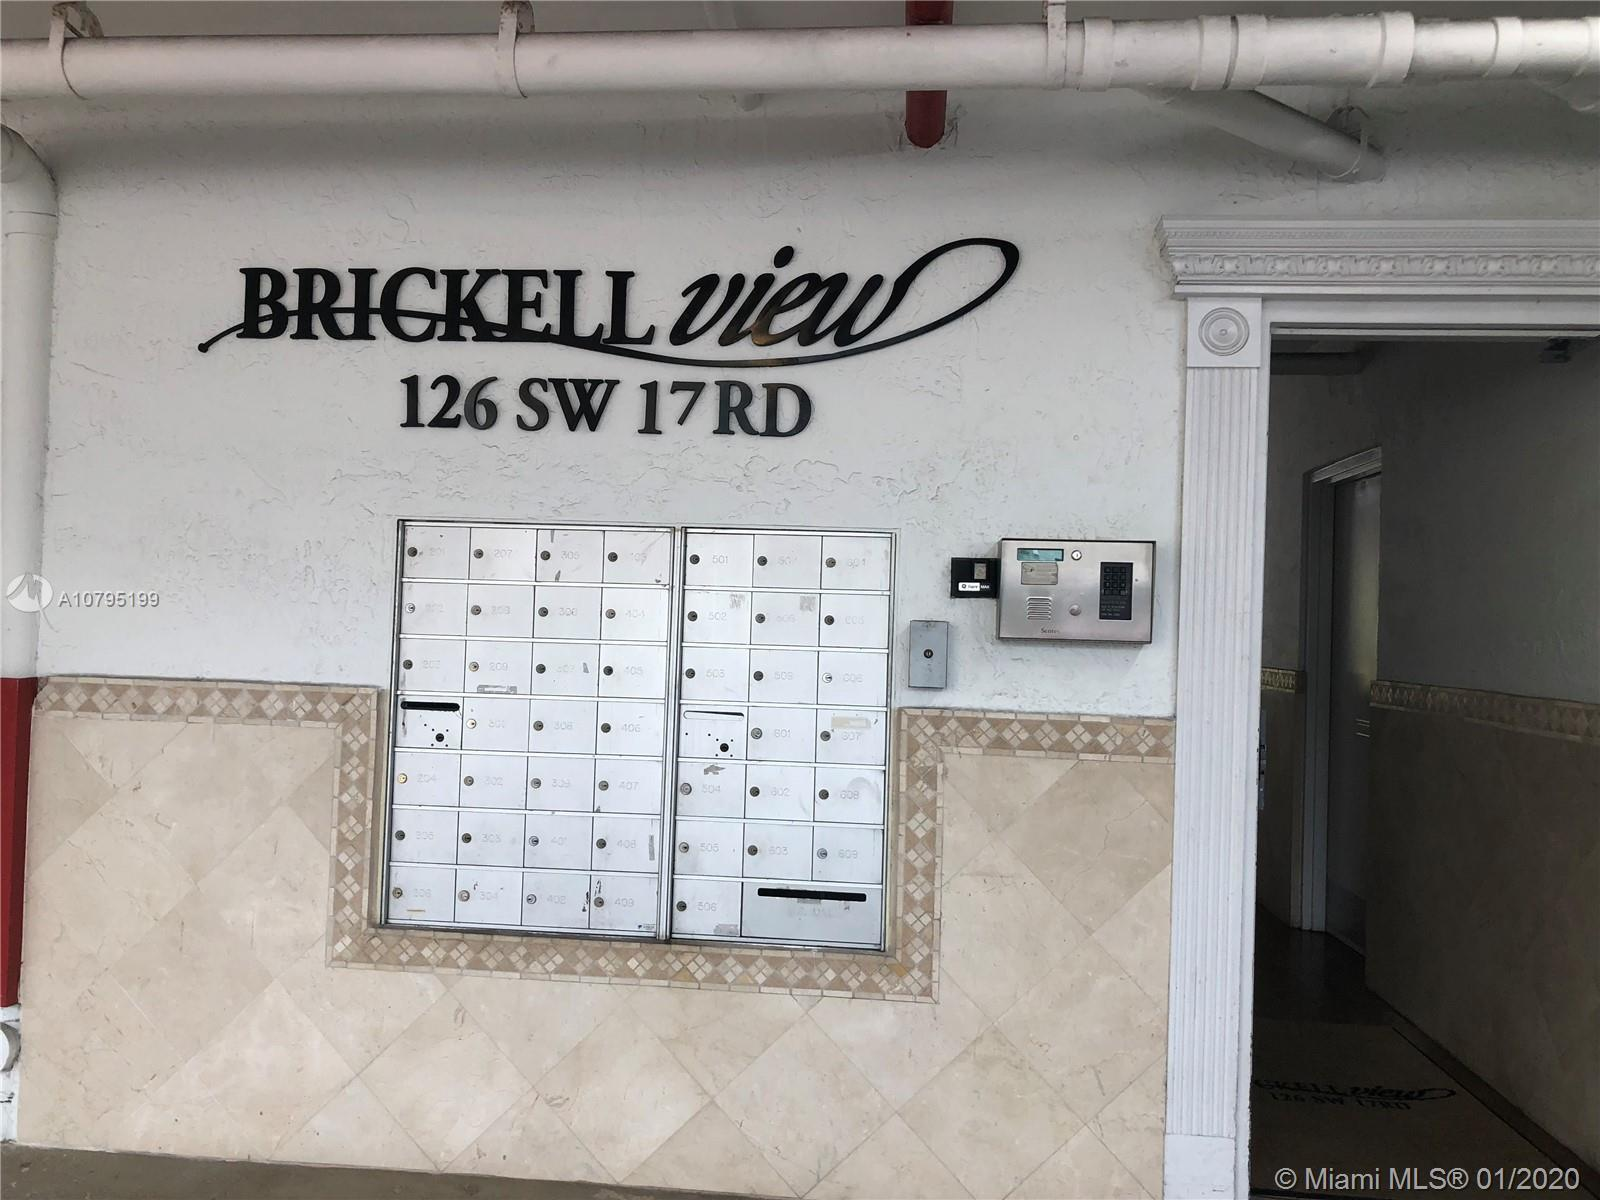 BEAUTIFUL 2 BEDROOMS 1 BATH IN A VERY DESIRABLE AREA CLOSE TO BRICKELL, RESTAURANTS, SHOPPING, METRO